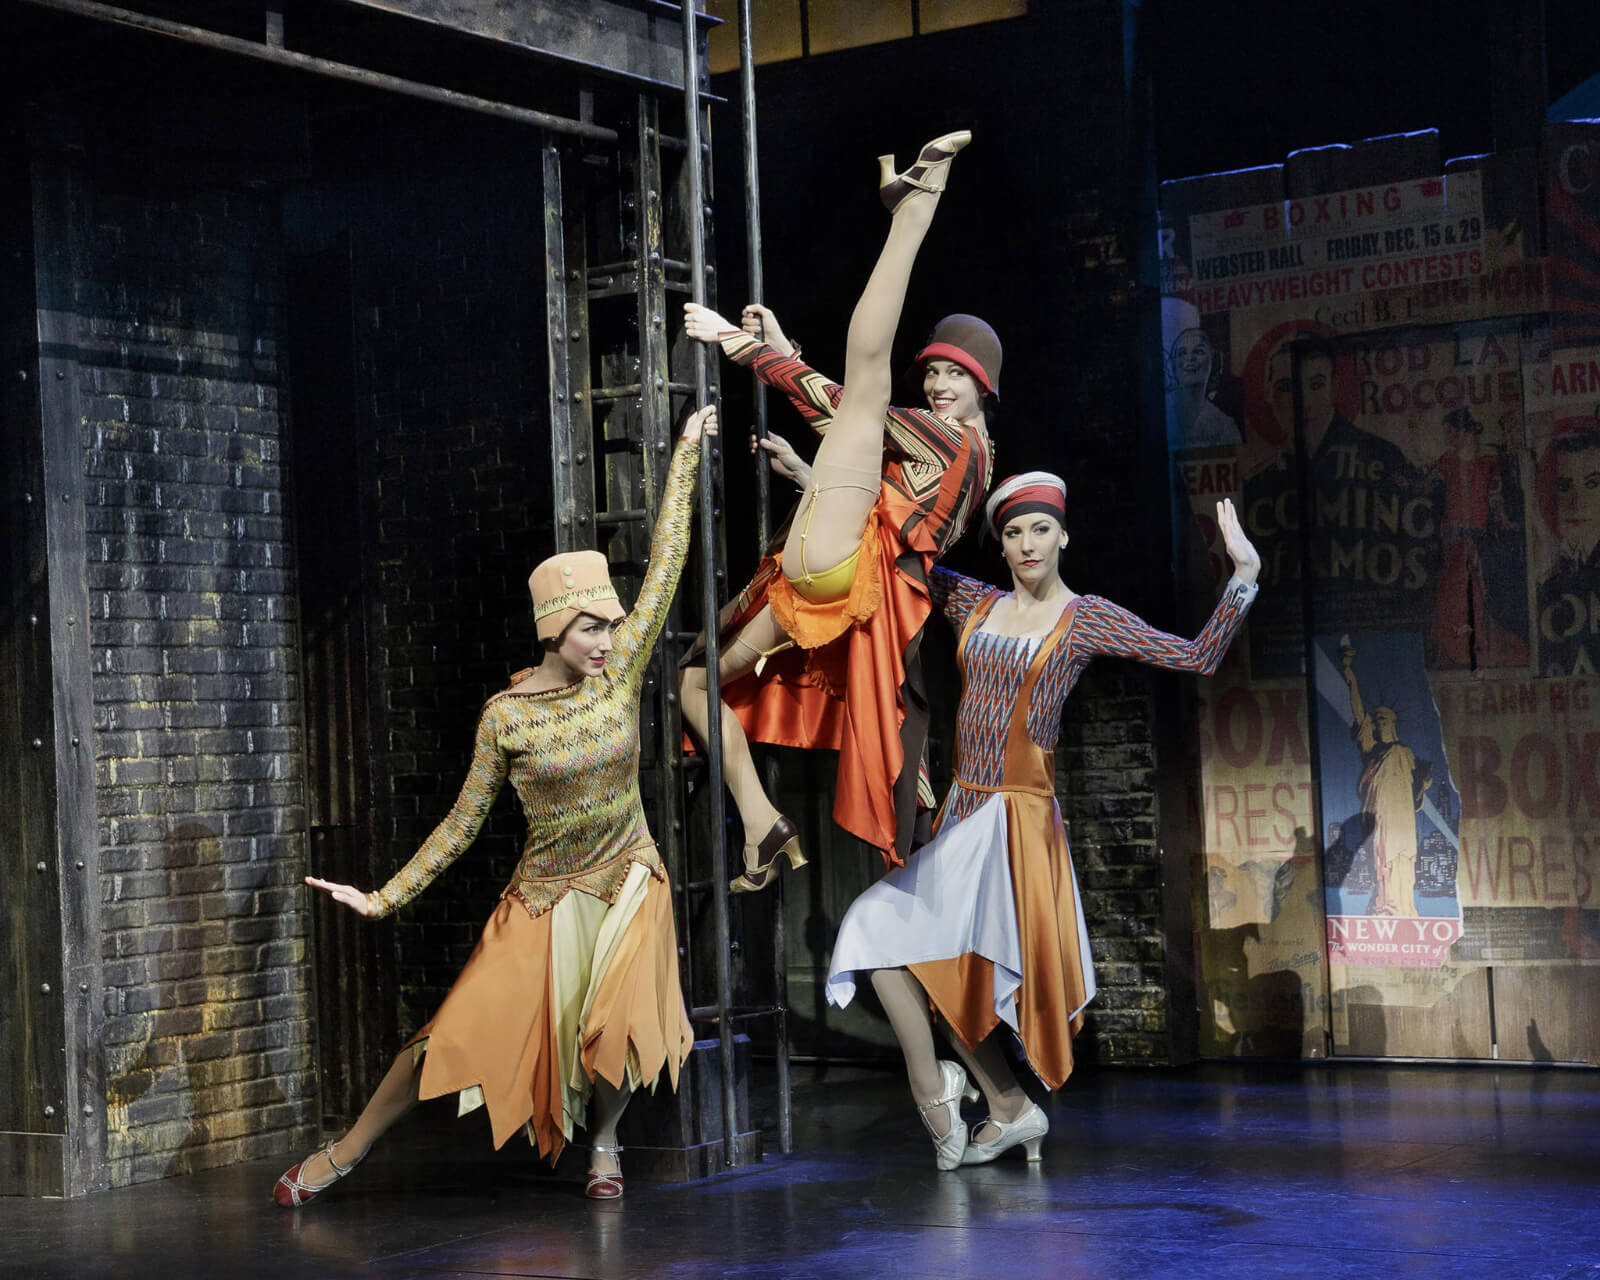 3 women in period flapper costumes dancing on a ladder. One has climbed the ladder and is in an extended battement.